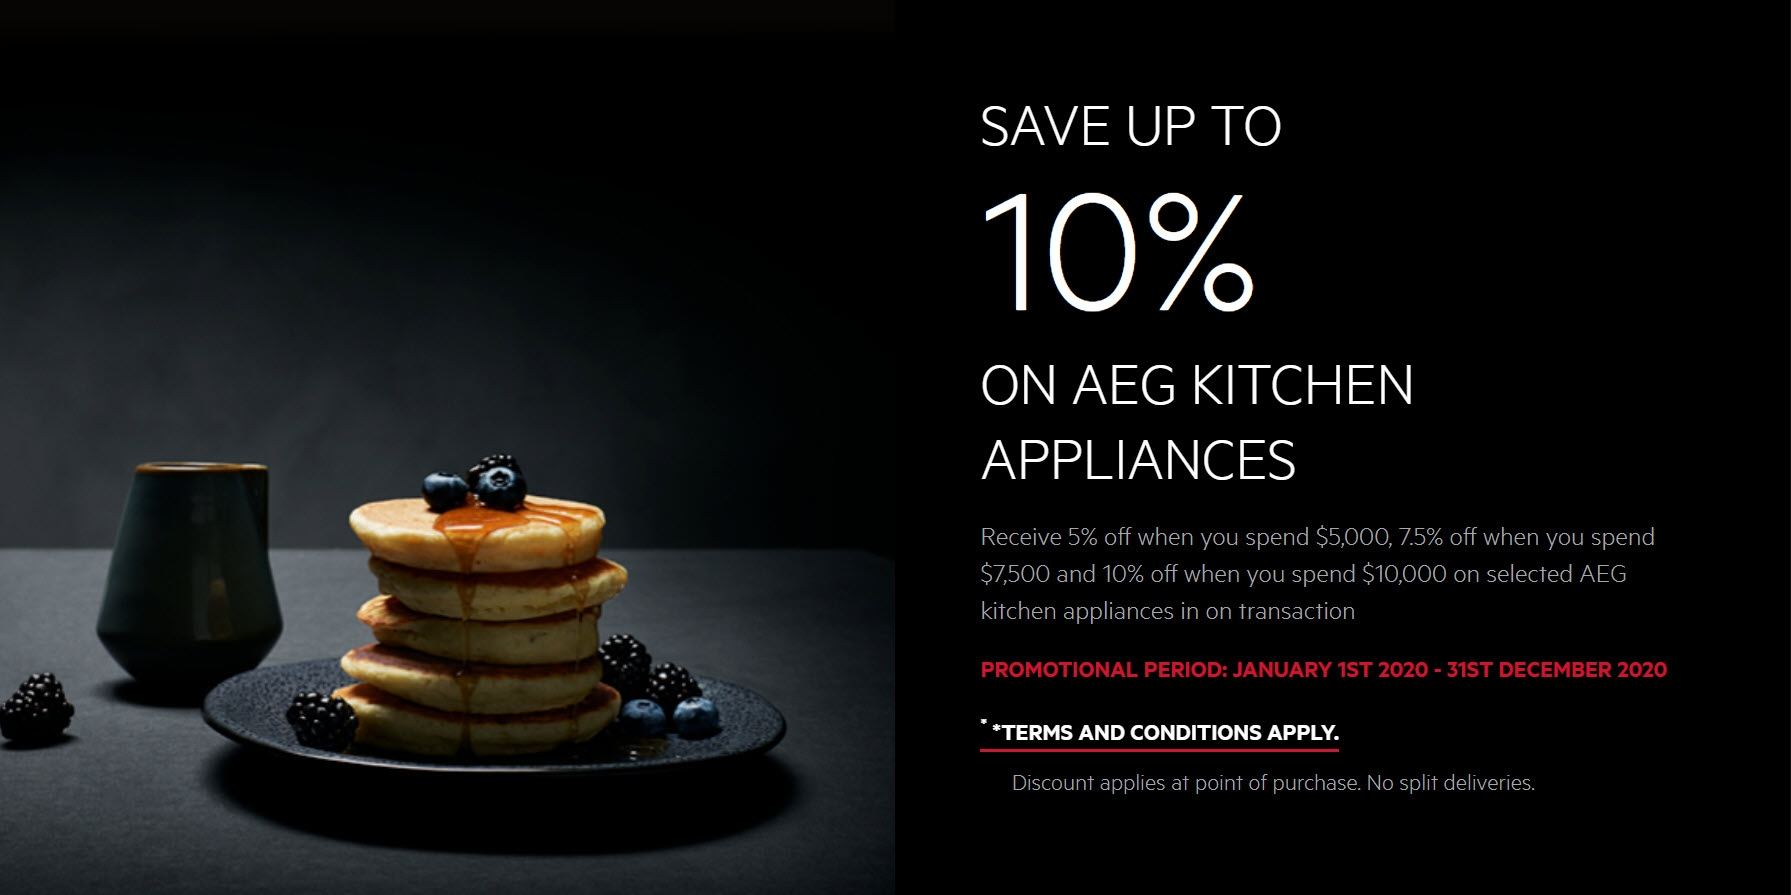 AEG Save Up 10% on AEG Kitchen Appliances